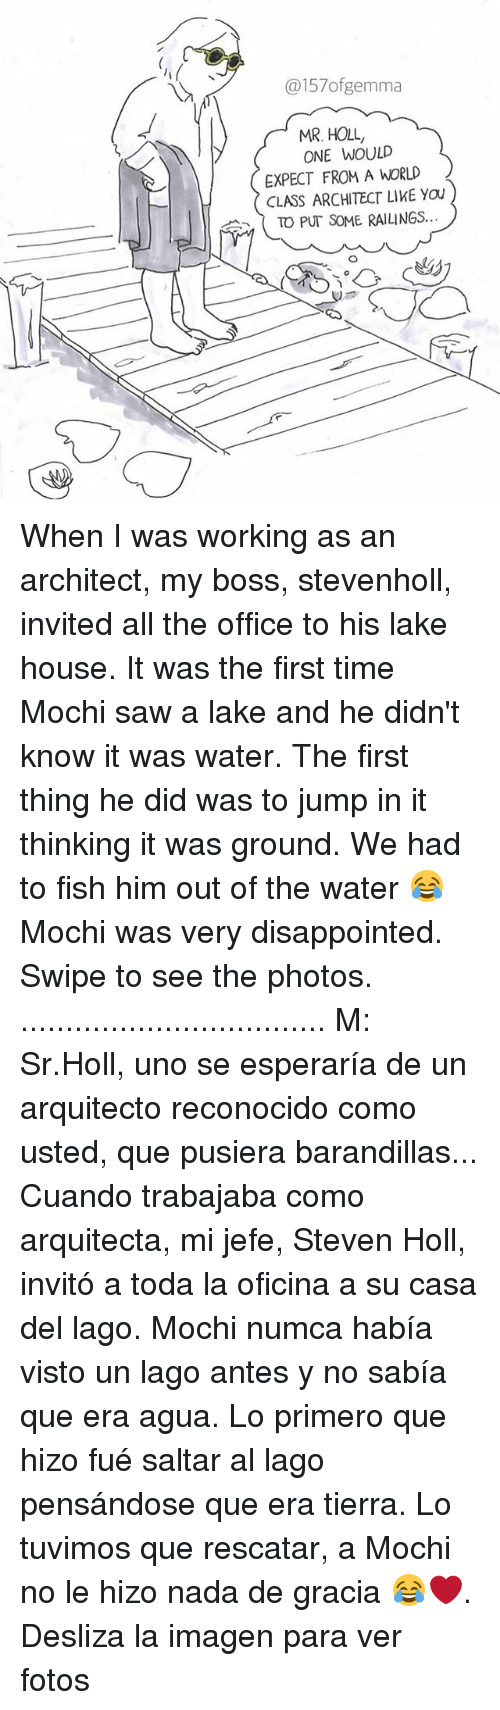 Imagenable: @157ofgemma  MR. HOLL,  ONE WOULD  EXPECT FROM A WORLD  CLASS ARCHITECT LIKE YOU  ( TO PUT SOME RAILINGS  c曲 When I was working as an architect, my boss, stevenholl, invited all the office to his lake house. It was the first time Mochi saw a lake and he didn't know it was water. The first thing he did was to jump in it thinking it was ground. We had to fish him out of the water 😂 Mochi was very disappointed. Swipe to see the photos. .................................. M: Sr.Holl, uno se esperaría de un arquitecto reconocido como usted, que pusiera barandillas... Cuando trabajaba como arquitecta, mi jefe, Steven Holl, invitó a toda la oficina a su casa del lago. Mochi numca había visto un lago antes y no sabía que era agua. Lo primero que hizo fué saltar al lago pensándose que era tierra. Lo tuvimos que rescatar, a Mochi no le hizo nada de gracia 😂❤️. Desliza la imagen para ver fotos